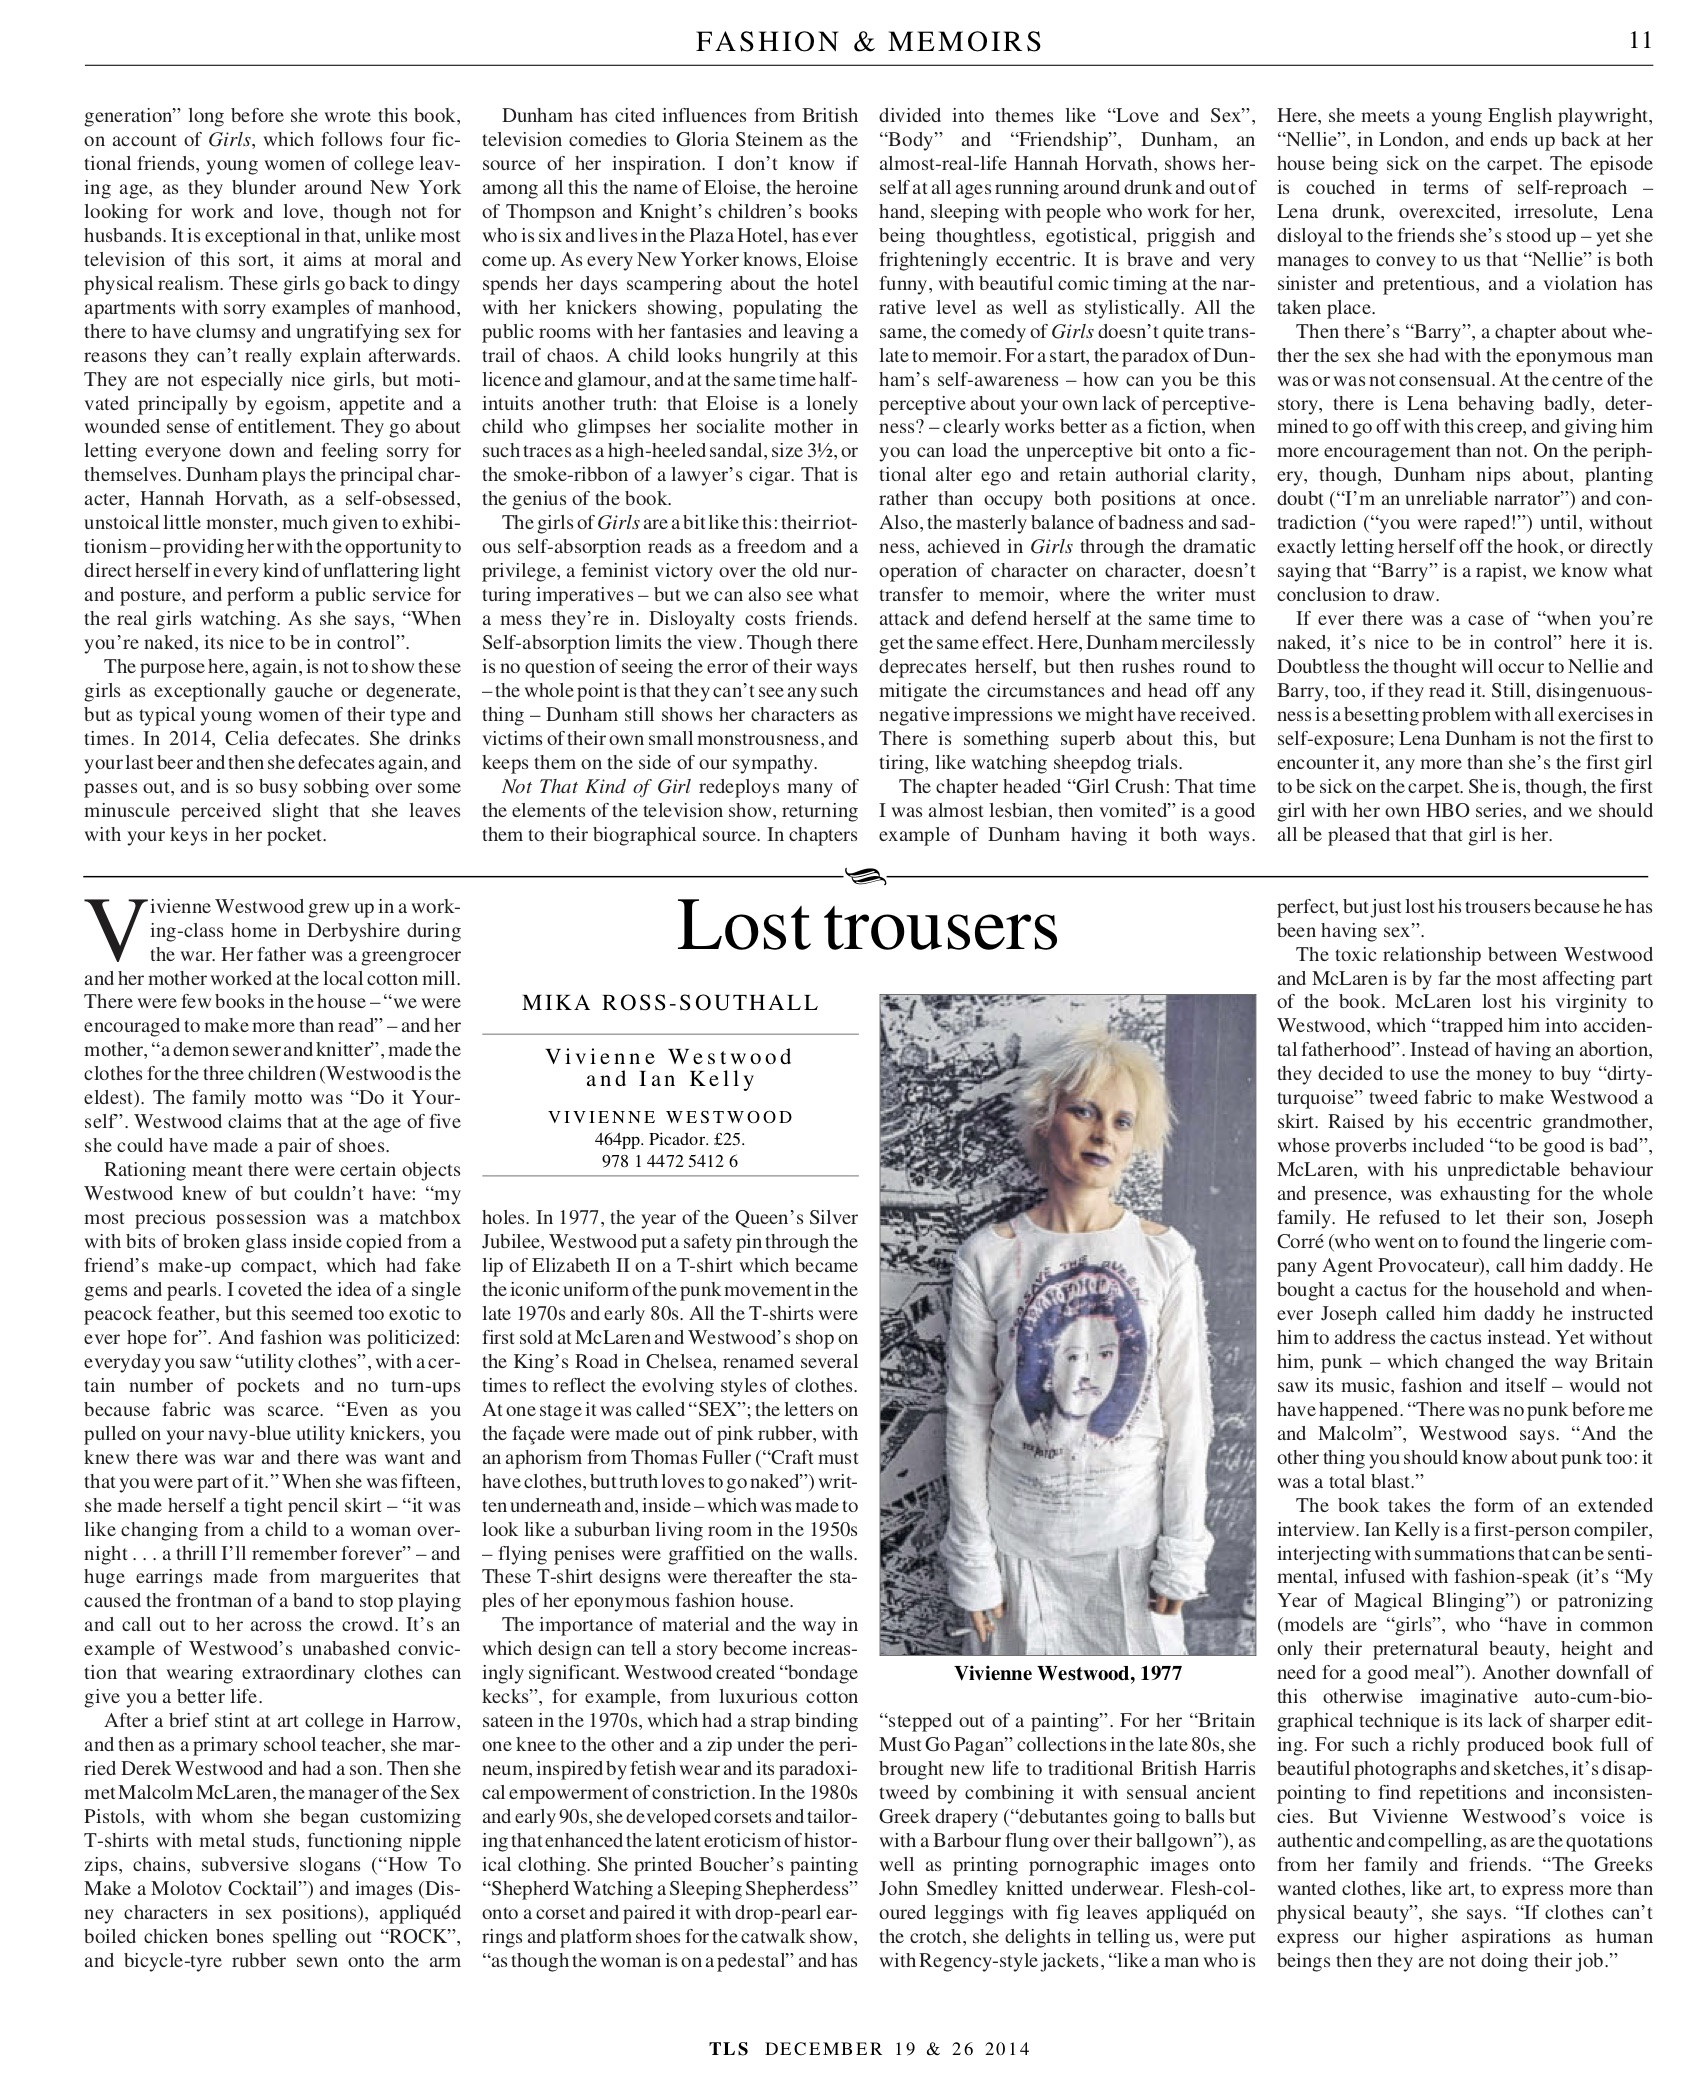 Lost trousers, Vivienne Westwood and Ian Kelly, Published in The Times Literary Supplement, December 19 & 26, 2014